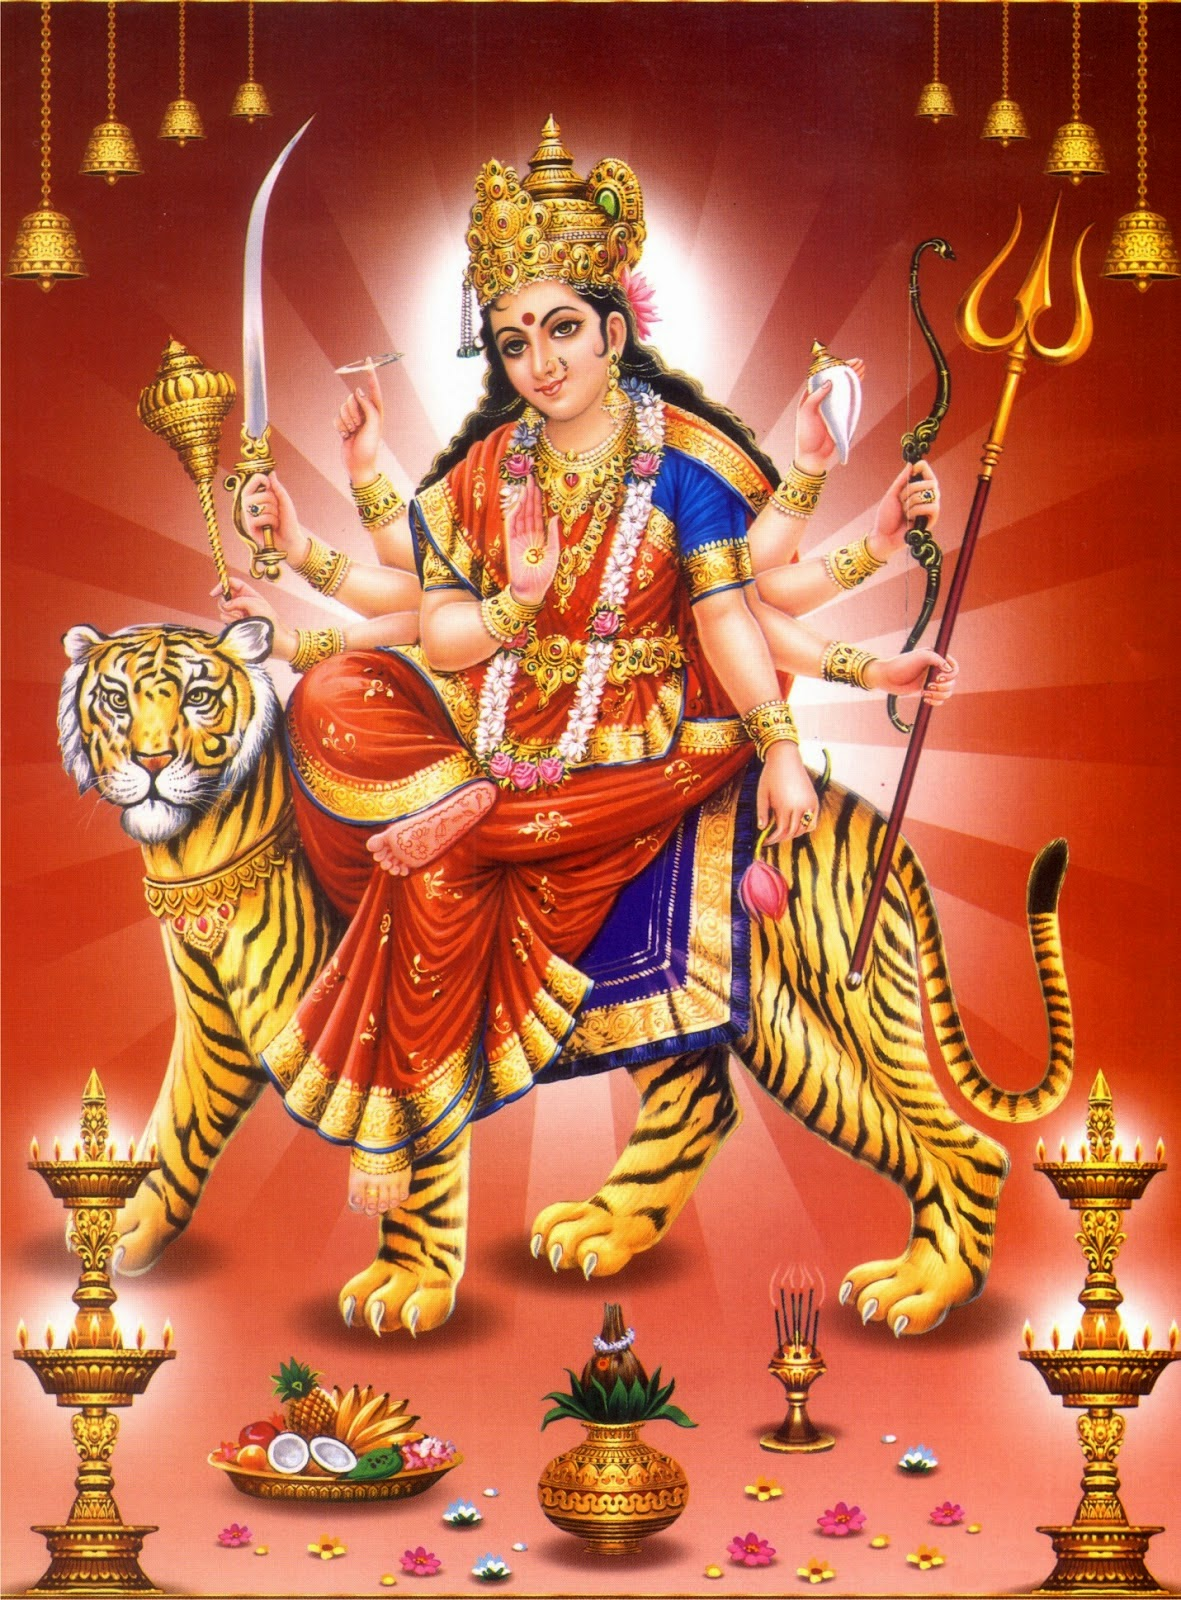 Great Wallpaper Lord Devi - Goddess%2BDurga%2BDevi%2Bwallpapers%2B%252862%2529  Gallery_40483.jpg